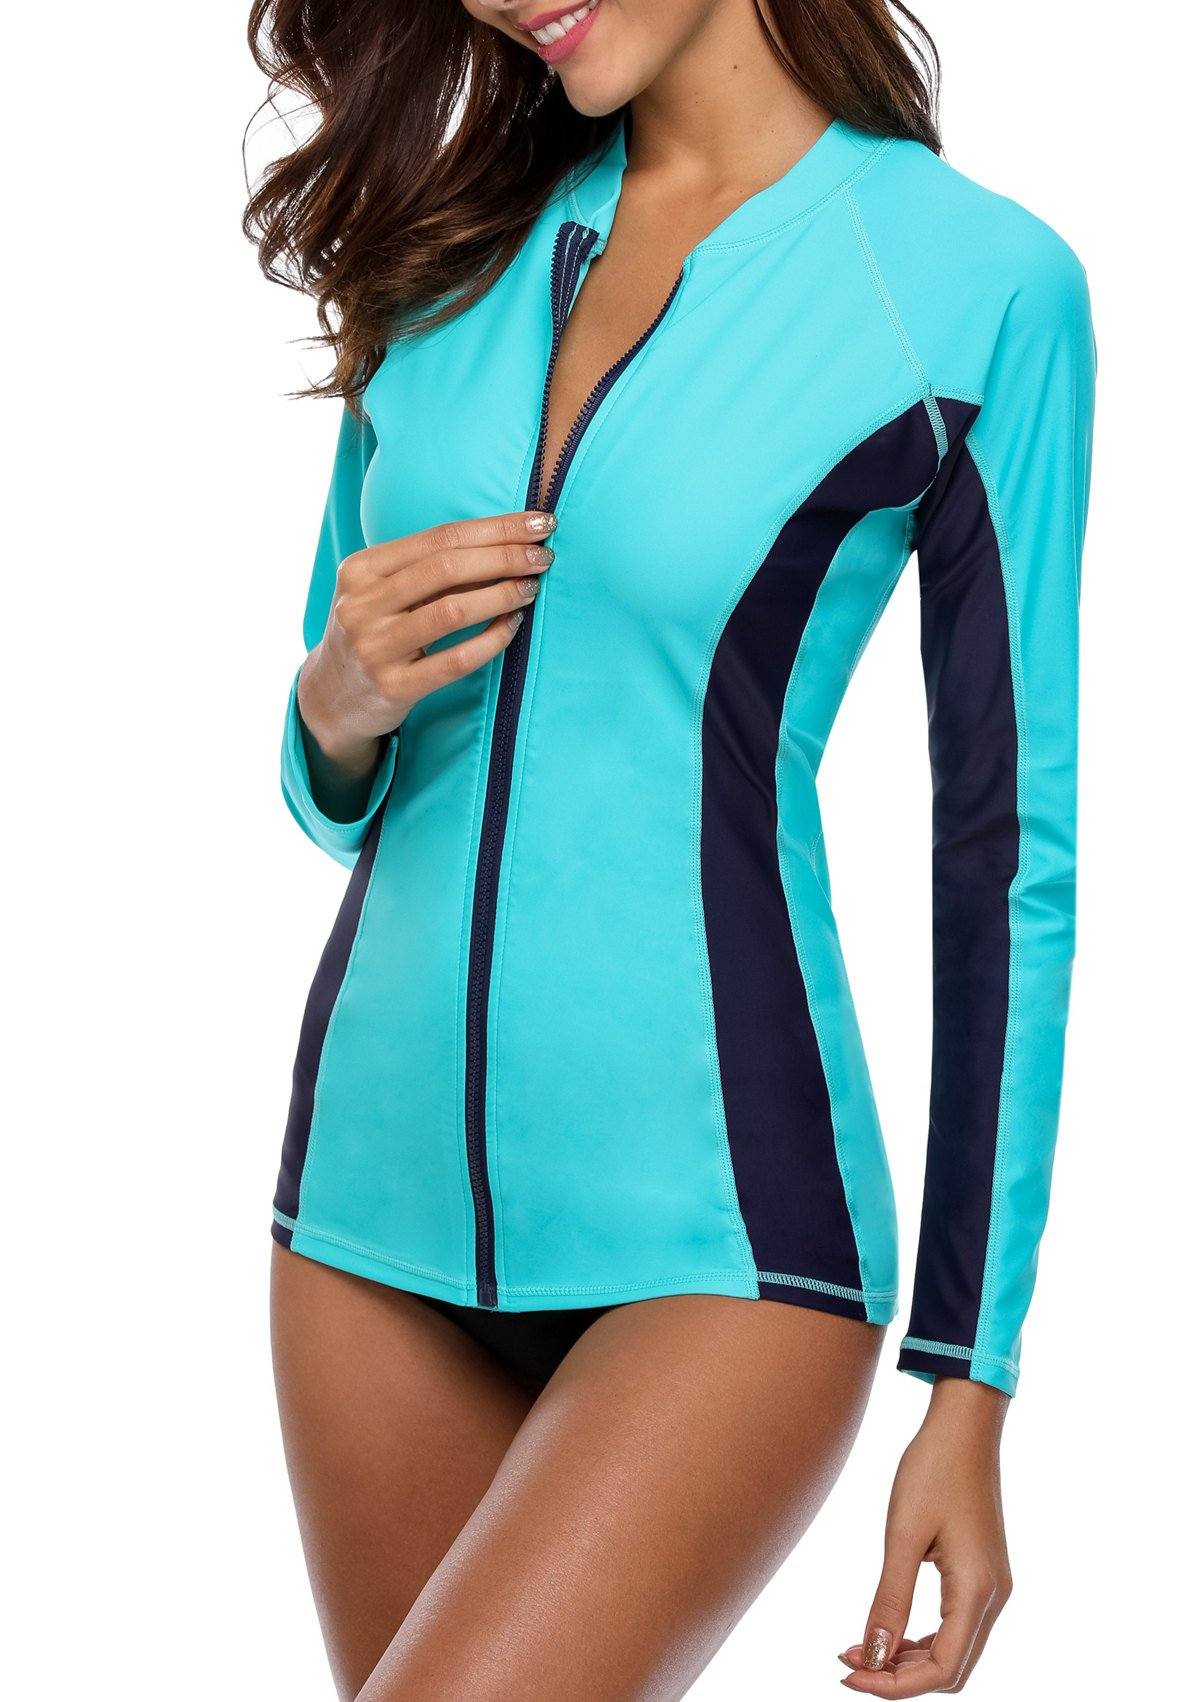 ATTRACO Long Sleeve Sporty Swim Shirt Womens Rashguard Tops Aqua Large by ATTRACO (Image #4)